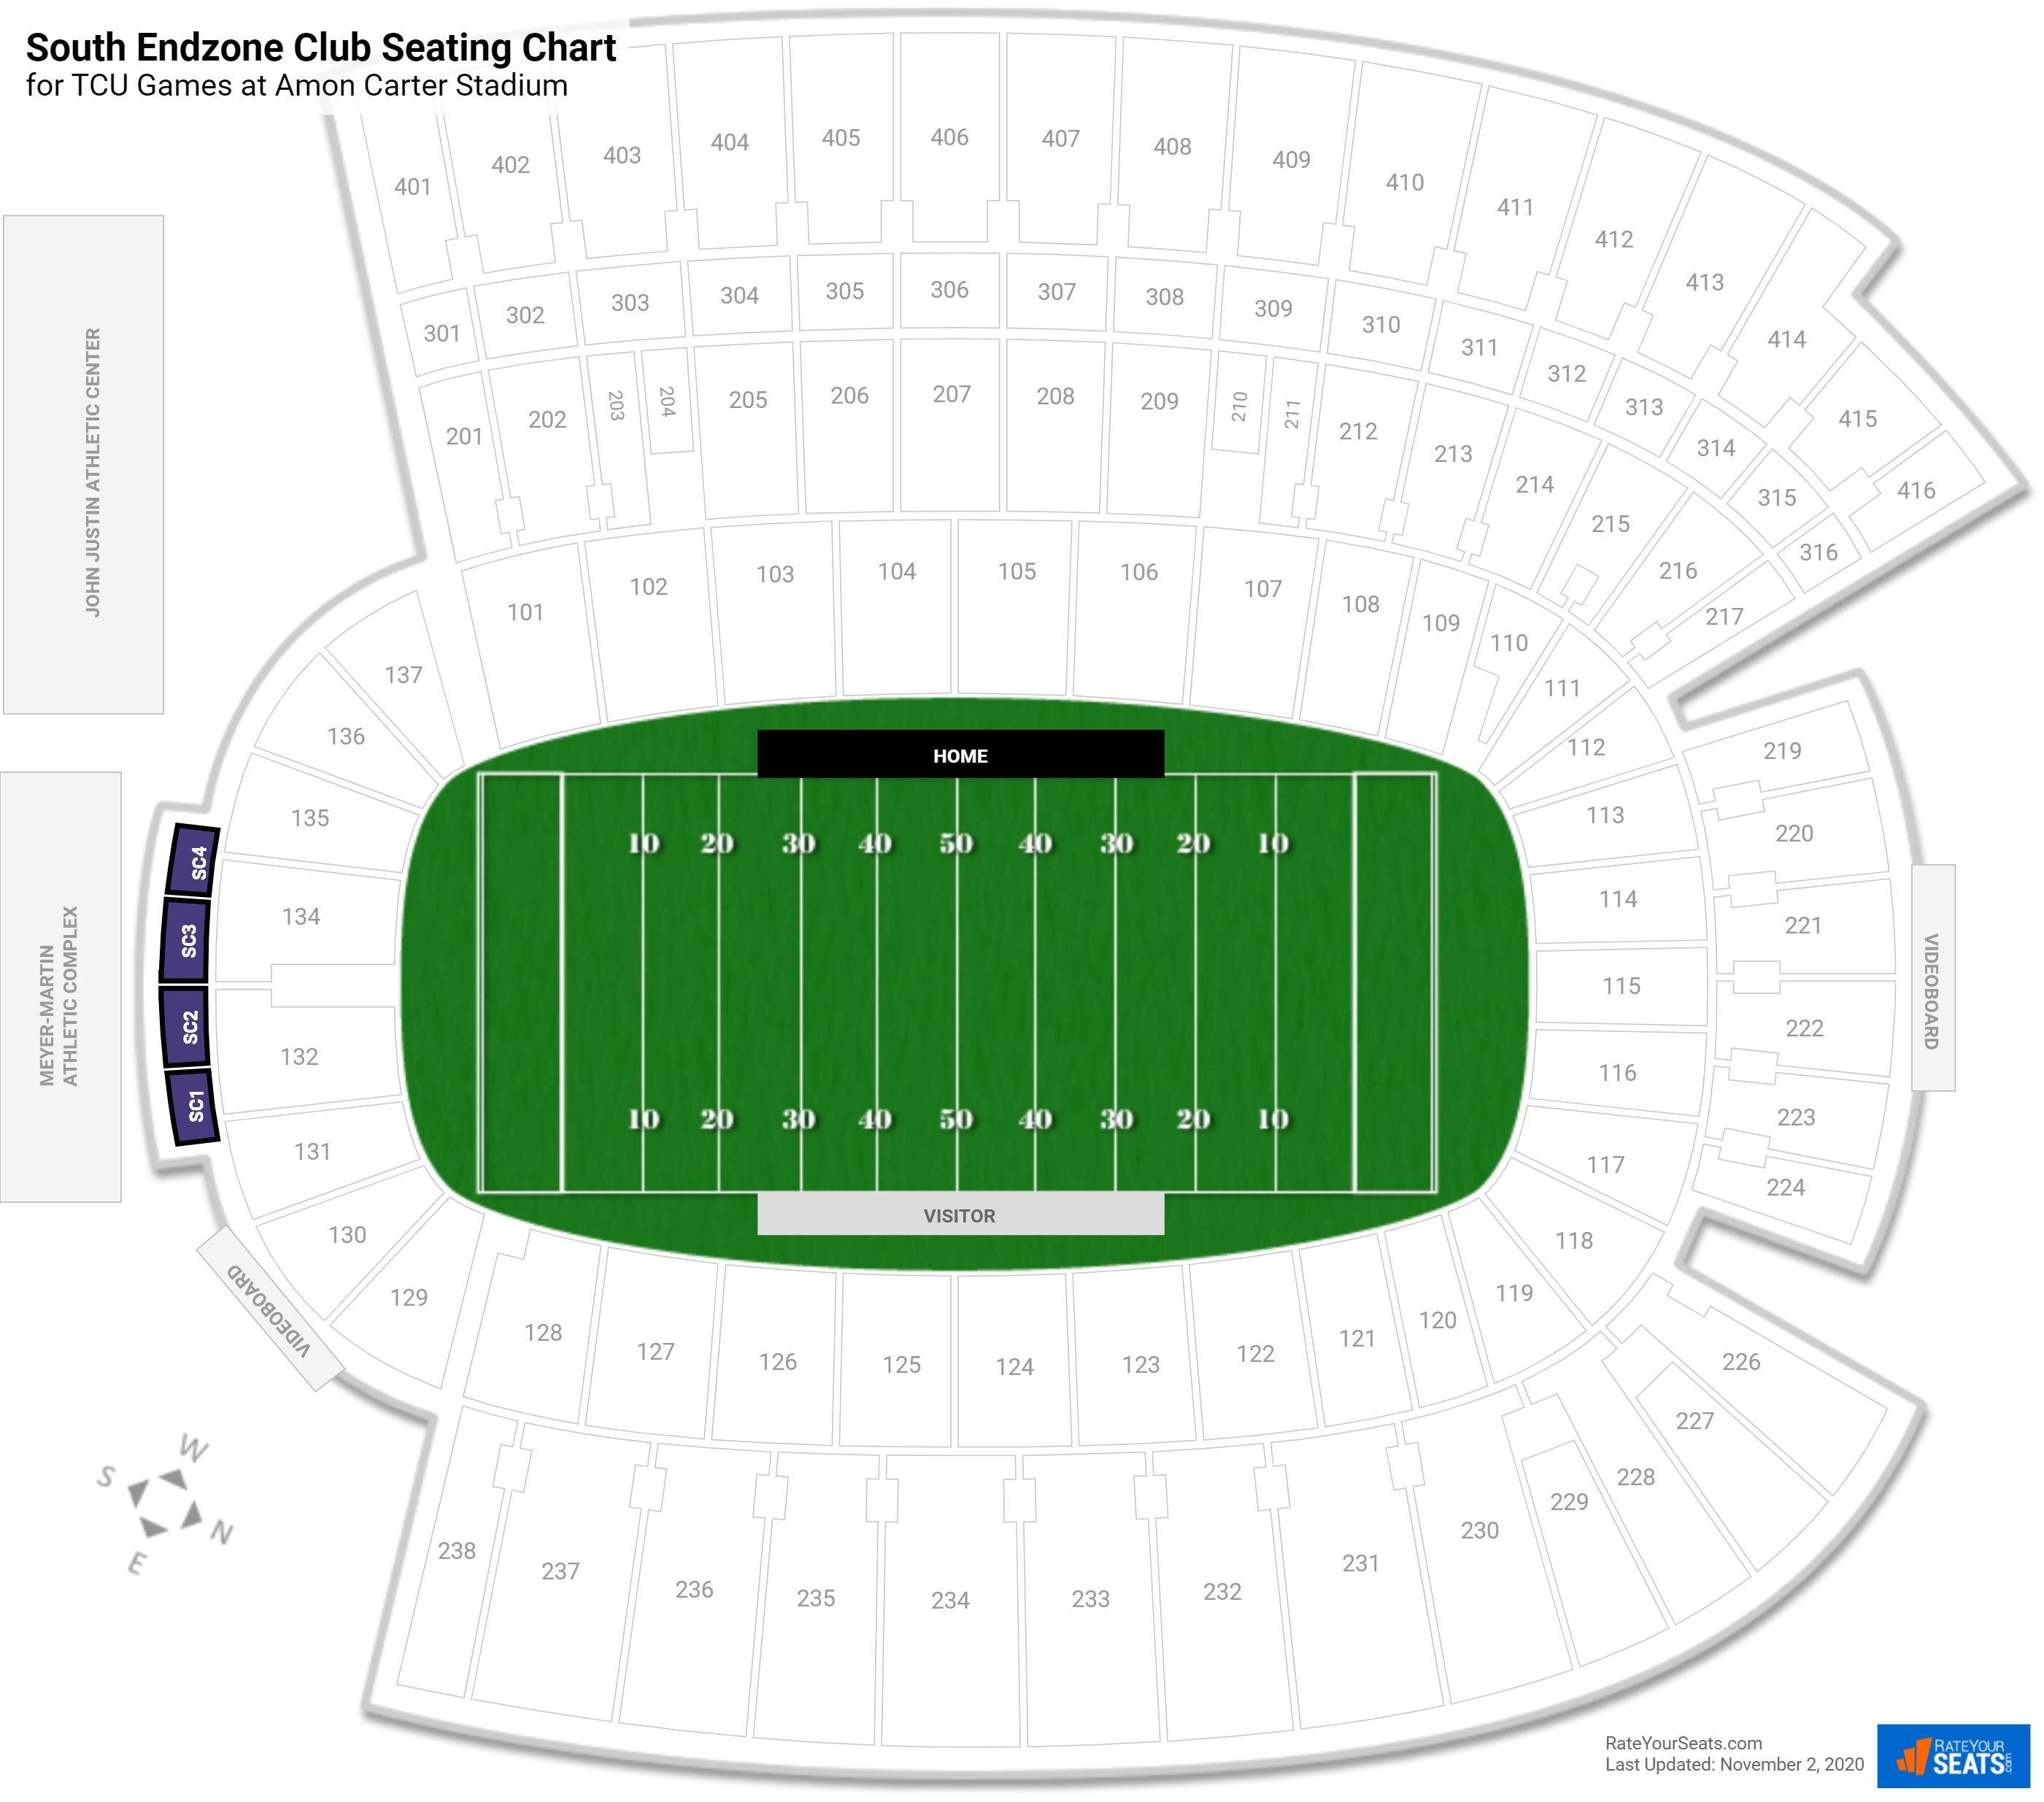 Amon Carter Stadium South Endzone Club seating chart